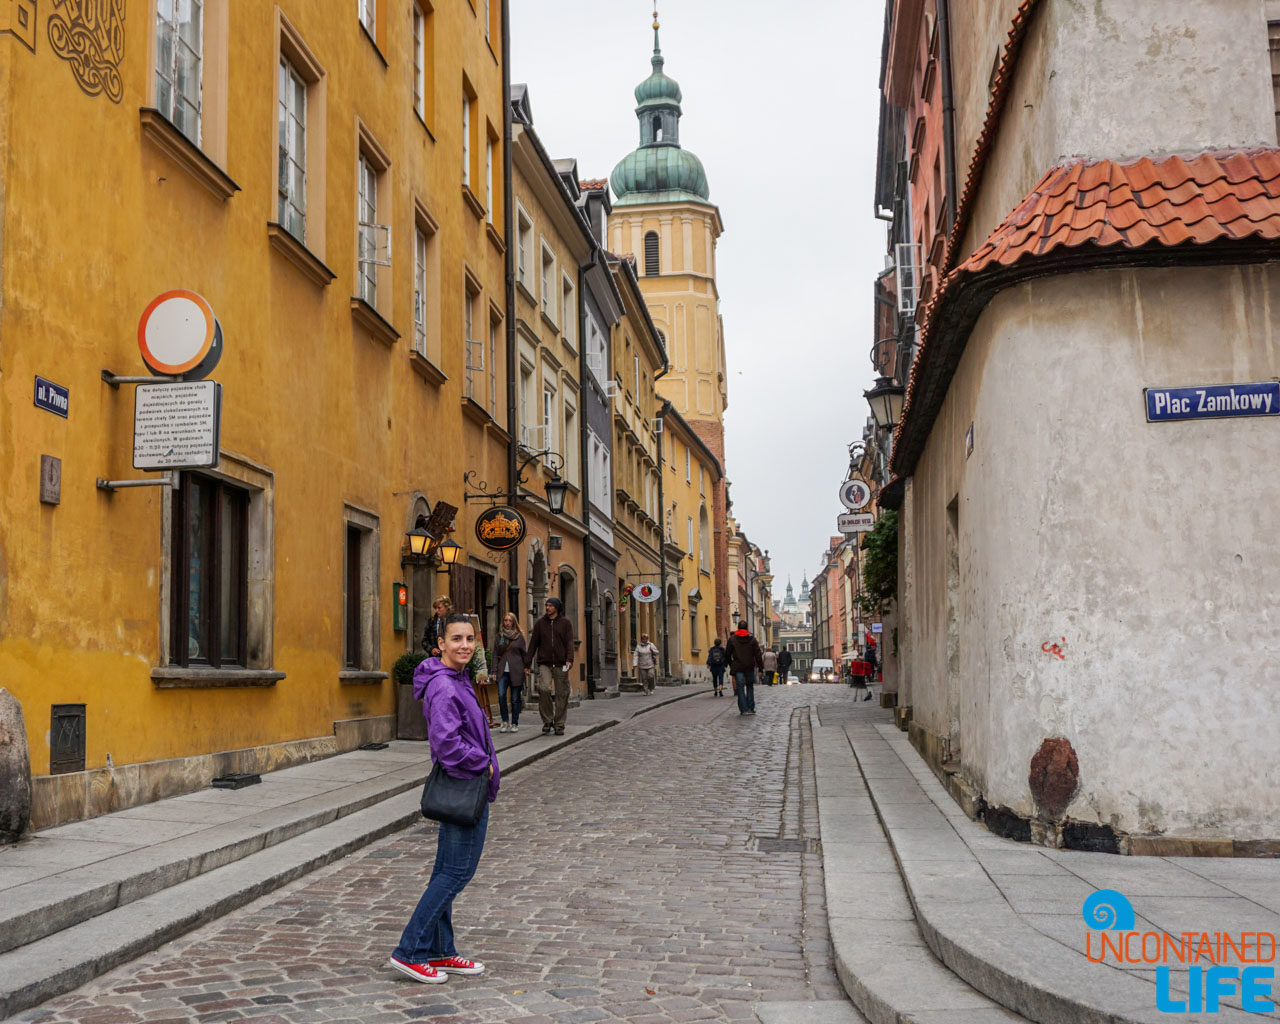 Street, Things to do in Warsaw, Poland, Uncontained Life